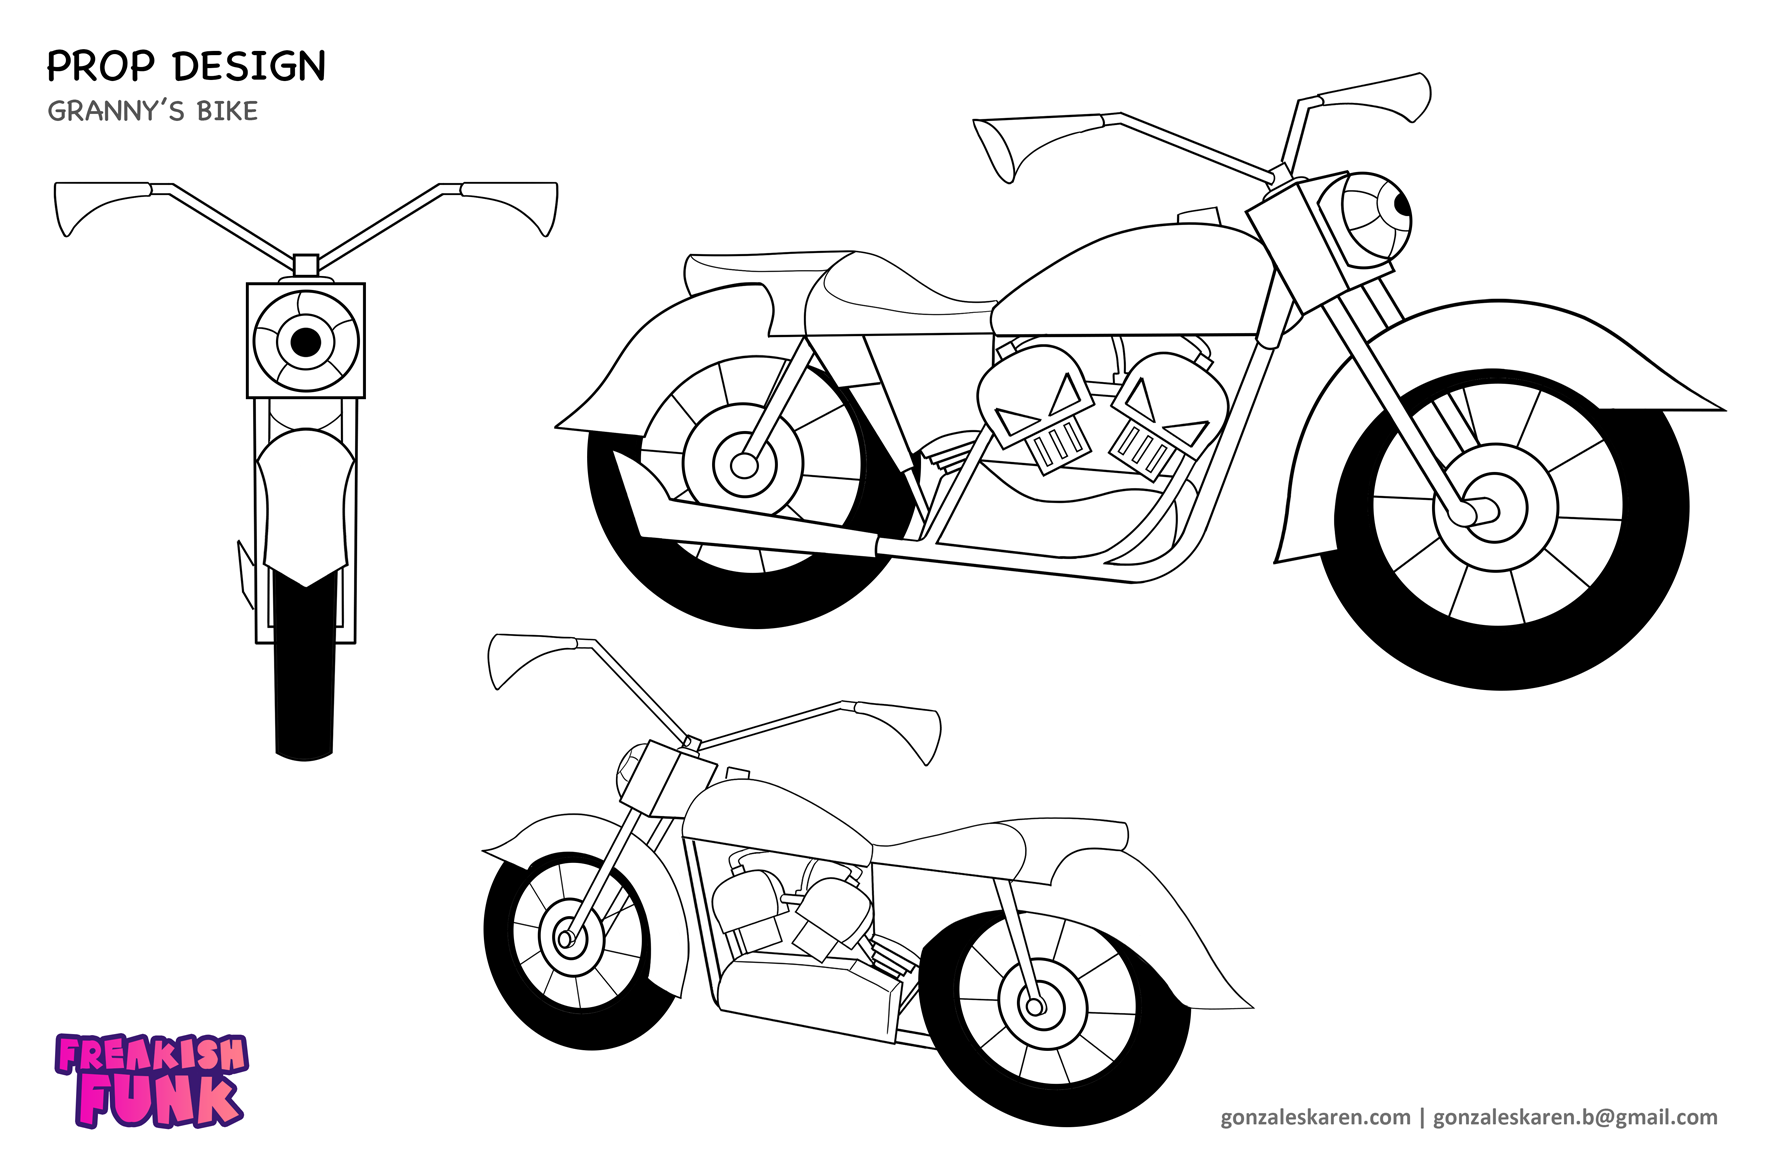 FF_PropDesign_Granny_Bike.png